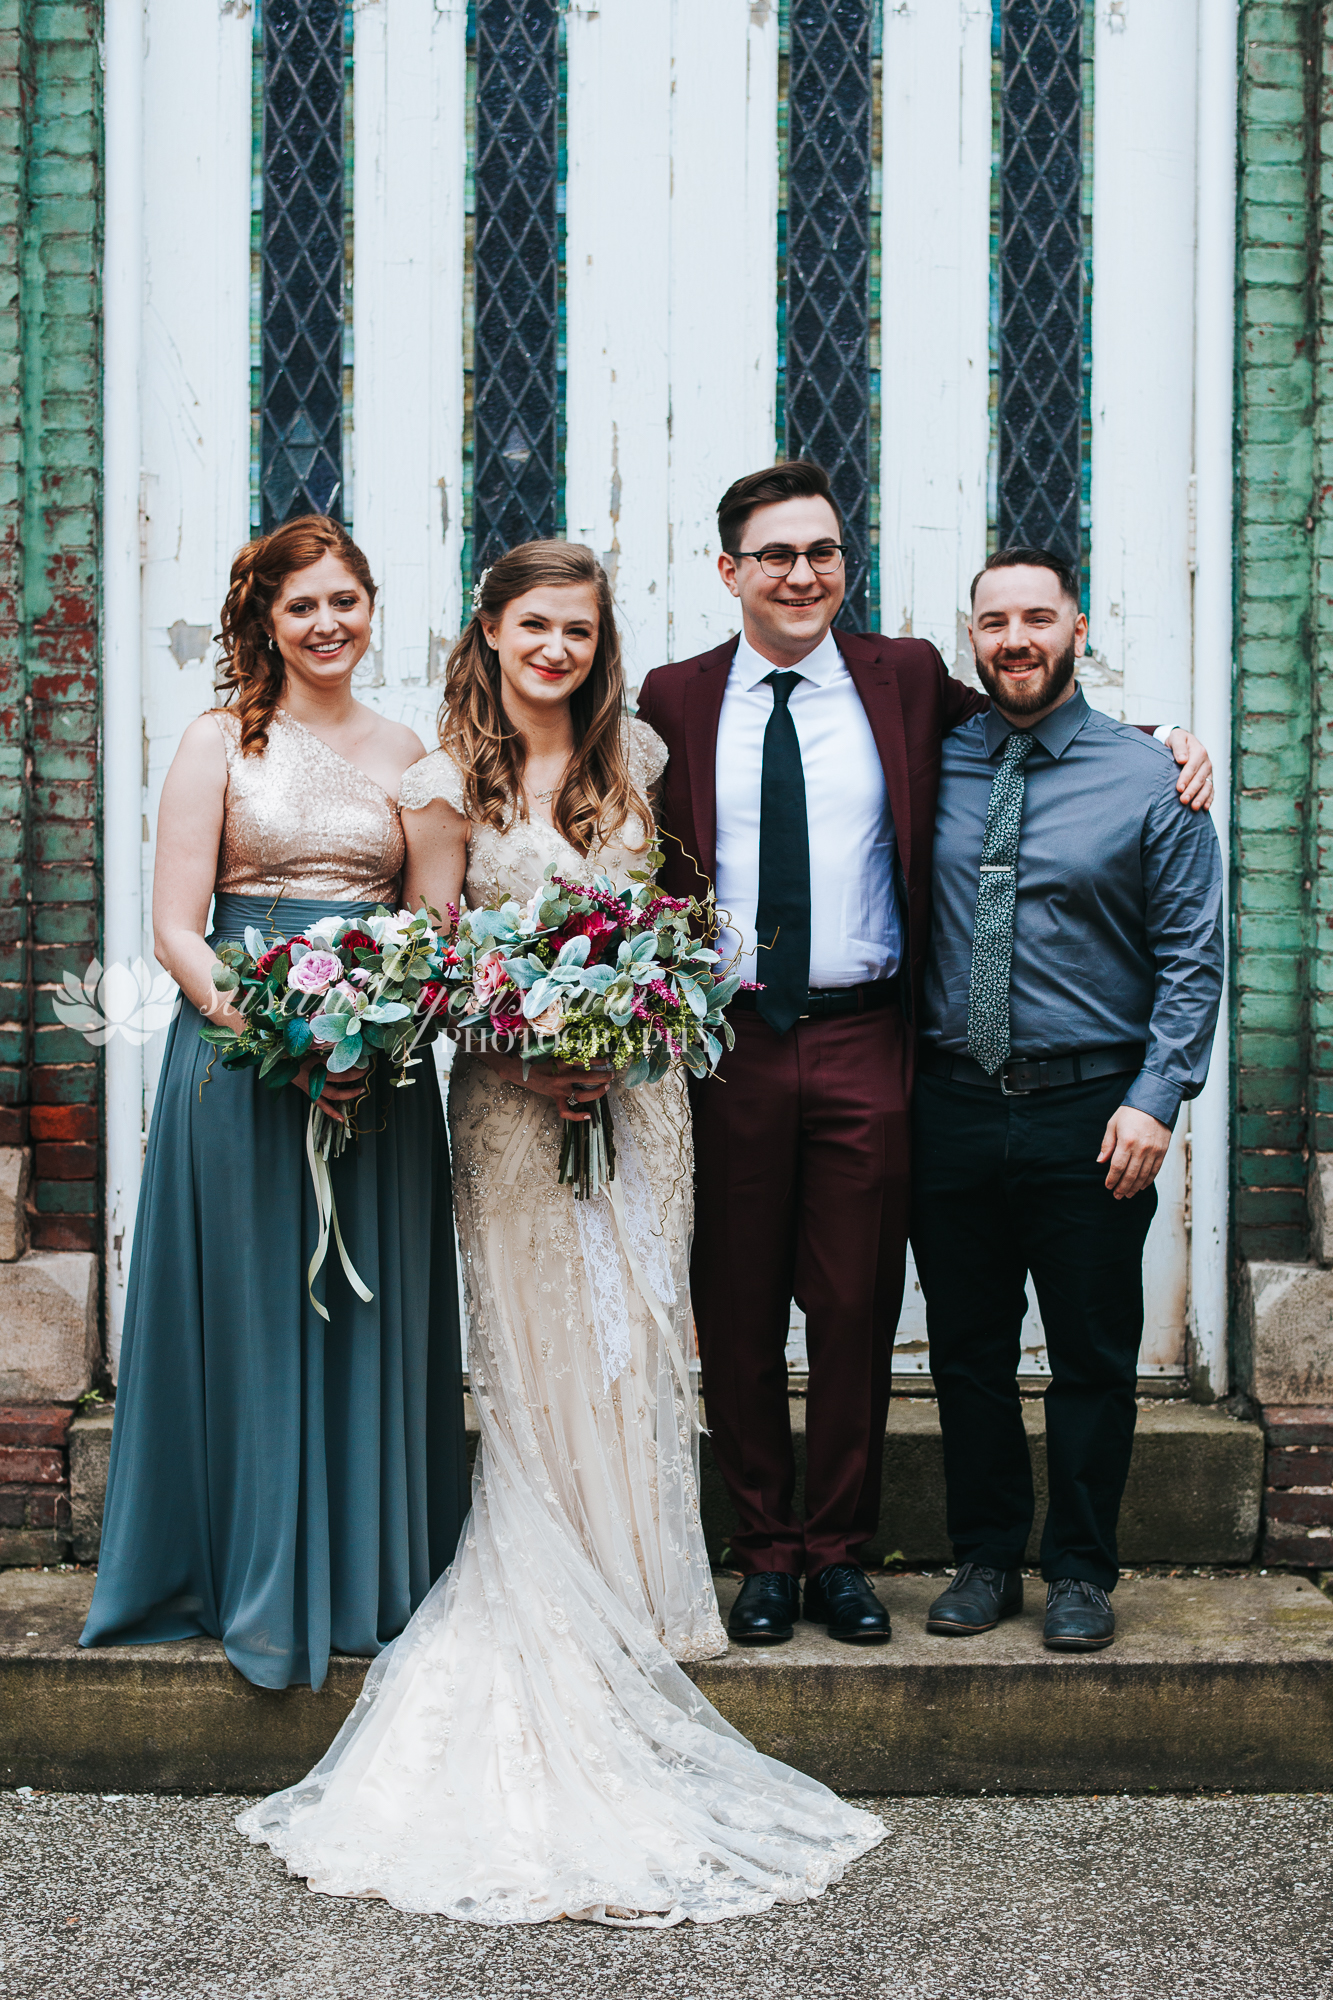 Chynna and John Wedding 05-18-2019 SLY Photography-35.jpg